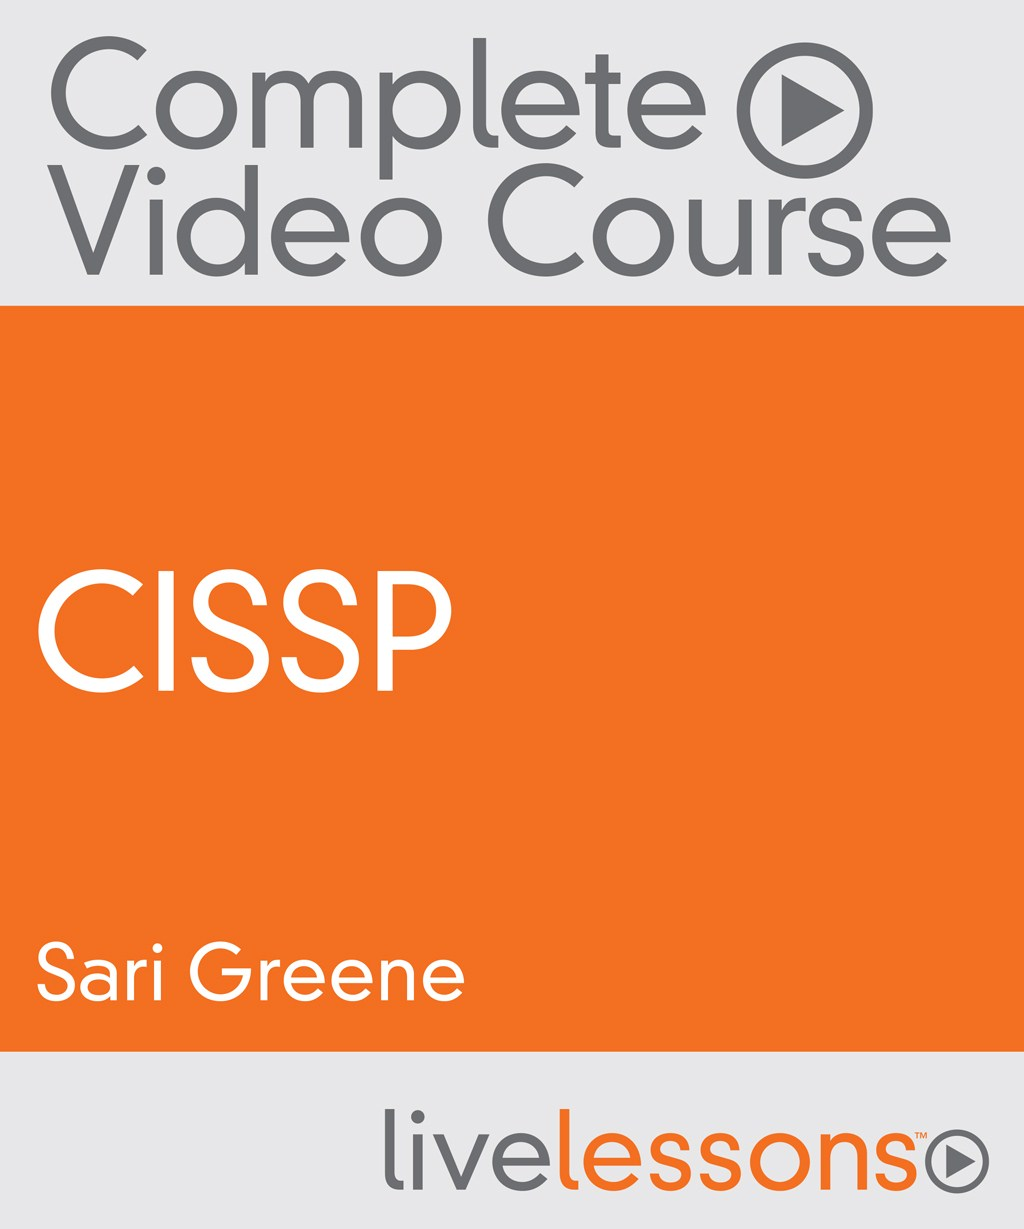 CISSP Complete Video Course